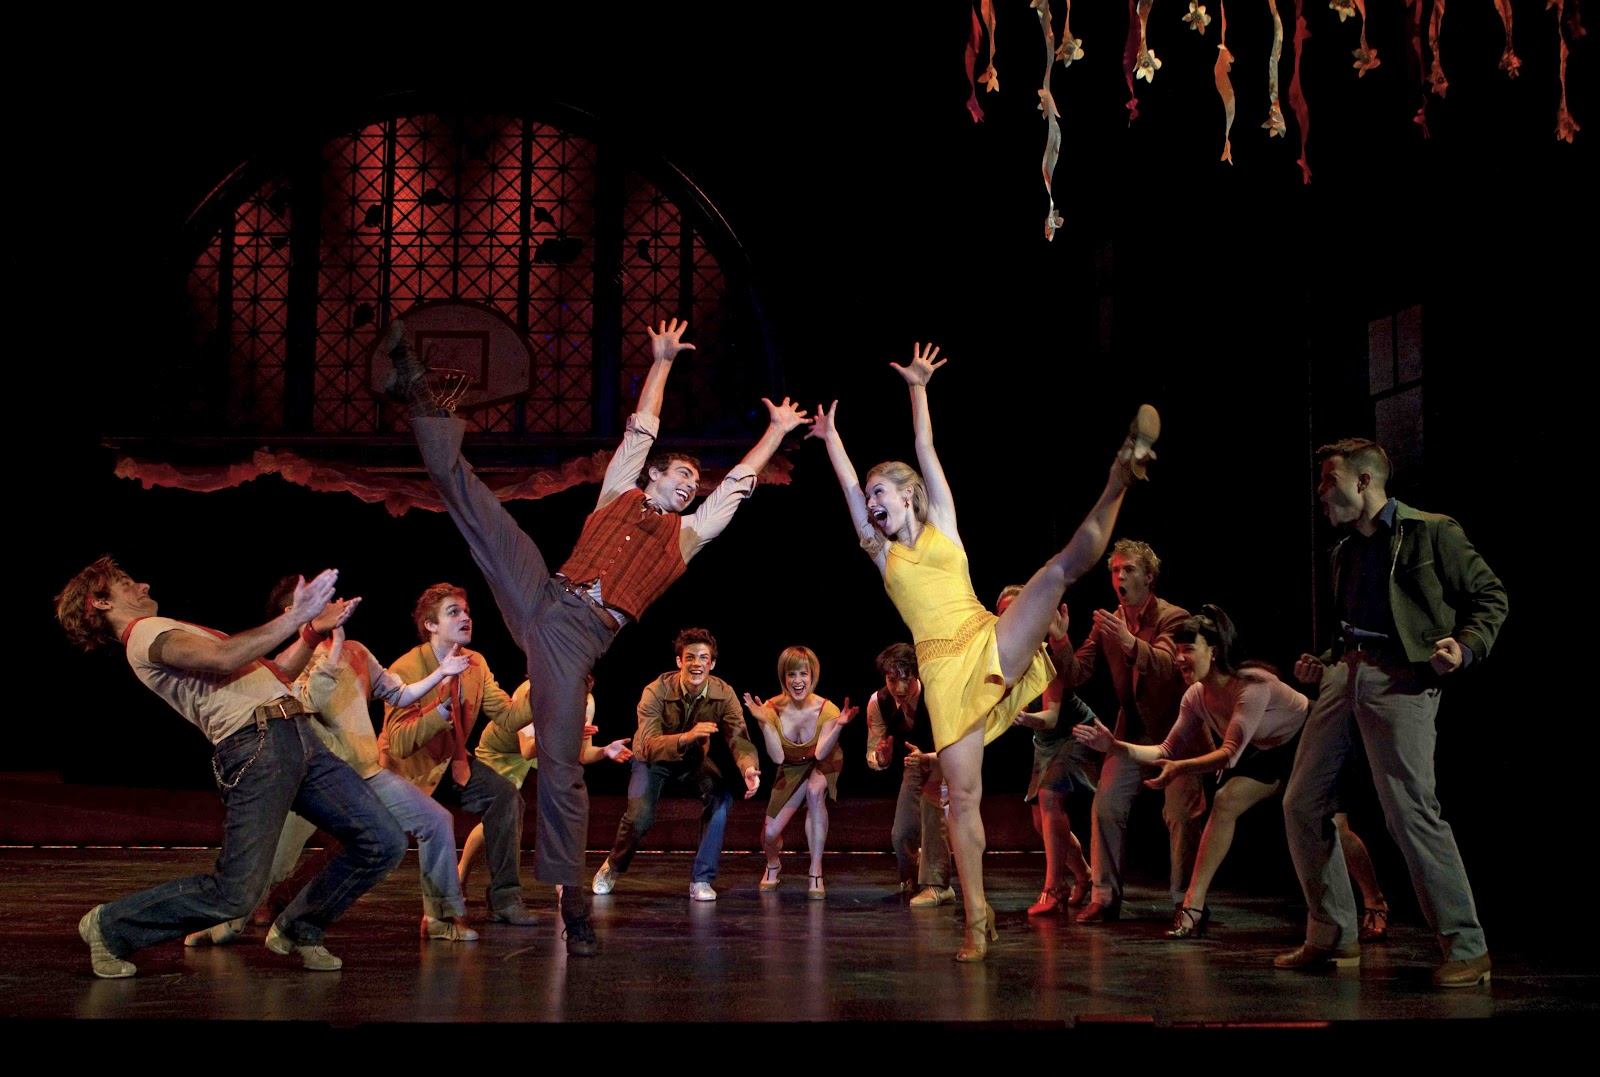 west side story and romeo Free essay: shakespeare's romeo and juliet and west side story both have a  lot in common as well as major differences that set them apart although west.